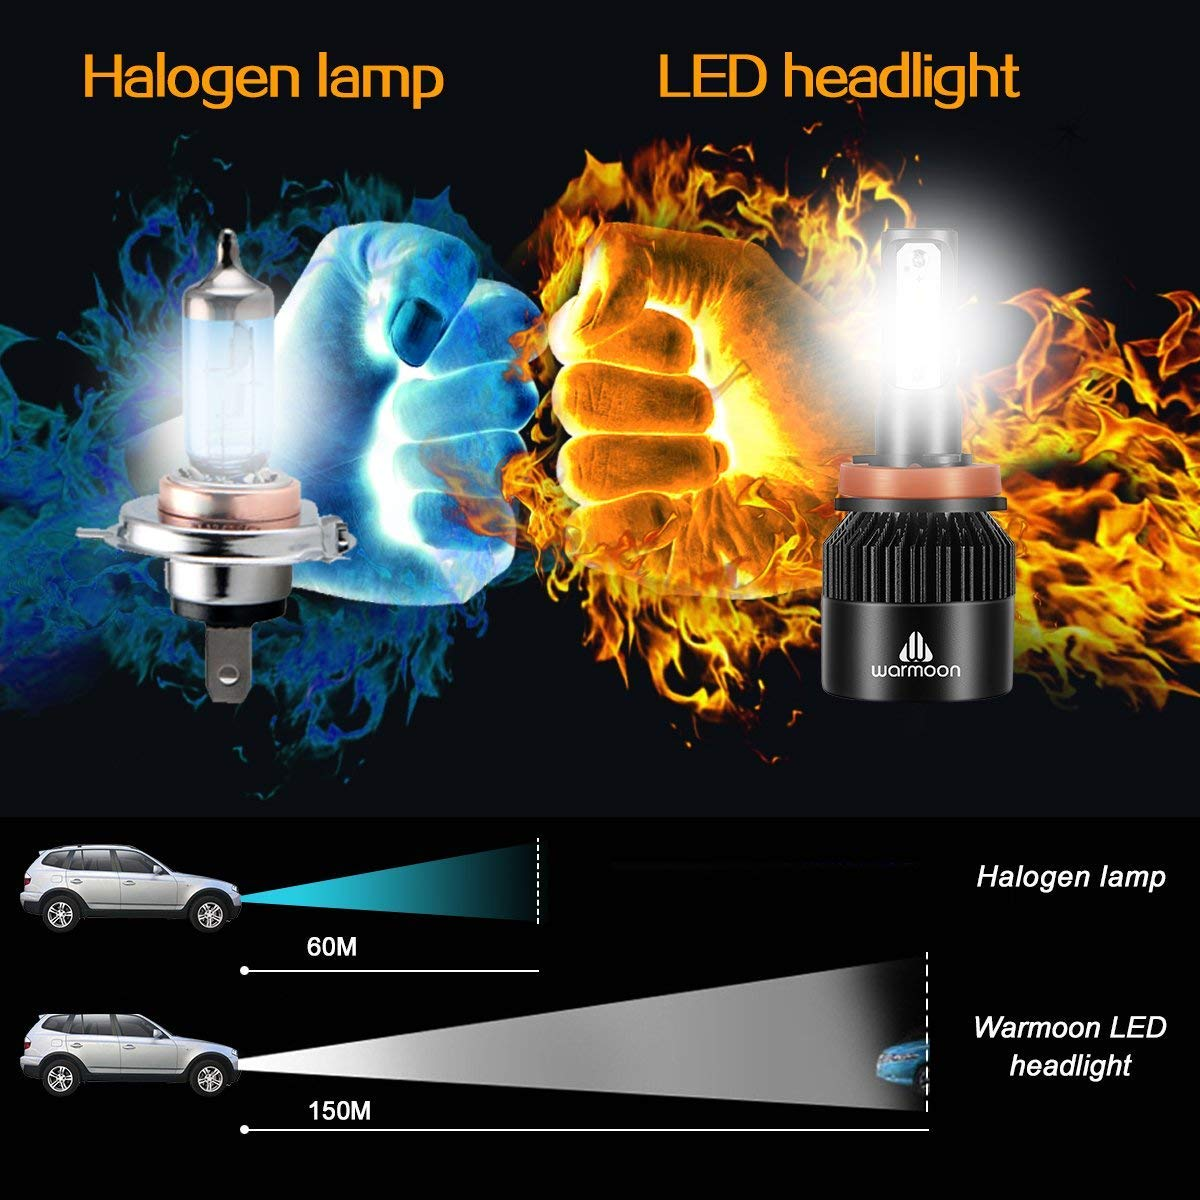 Warmoon H11//H8//H9 LED Headlight Bulbs Conversion Kits Low Beam//Fog light DOT Approved IP65 Waterproof 36W 8000lm 6500K Cool White with EMC Anti-radio Interference 5559077015